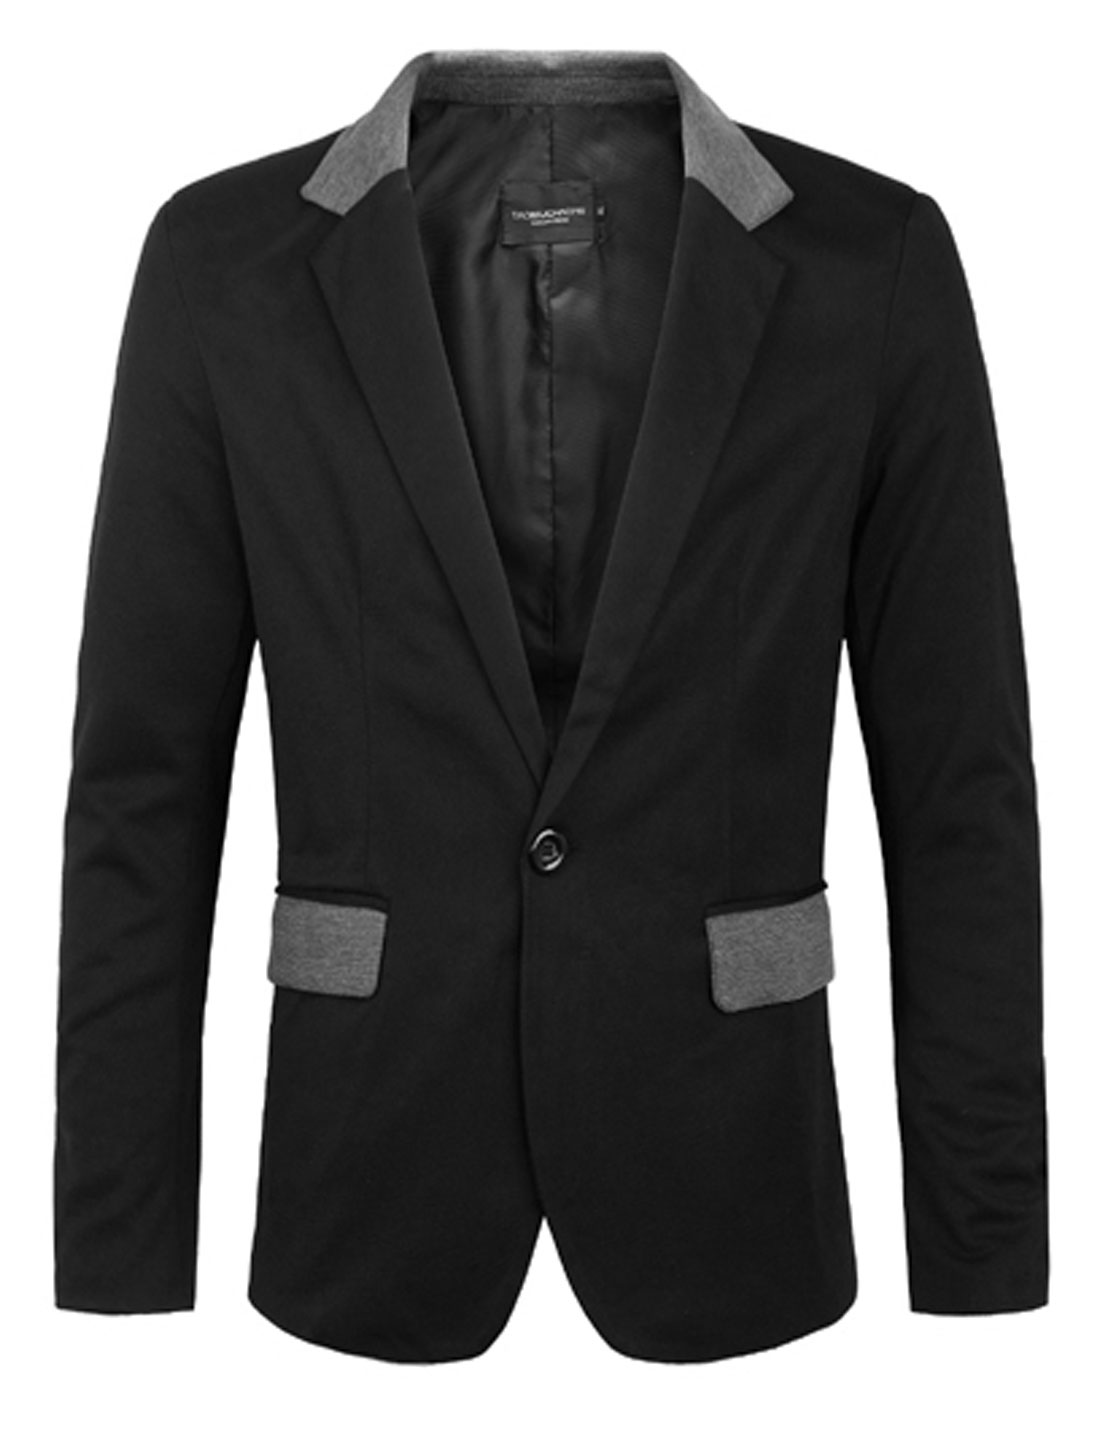 Men Notched Lapel One Button Front Blazer Jacket Black M